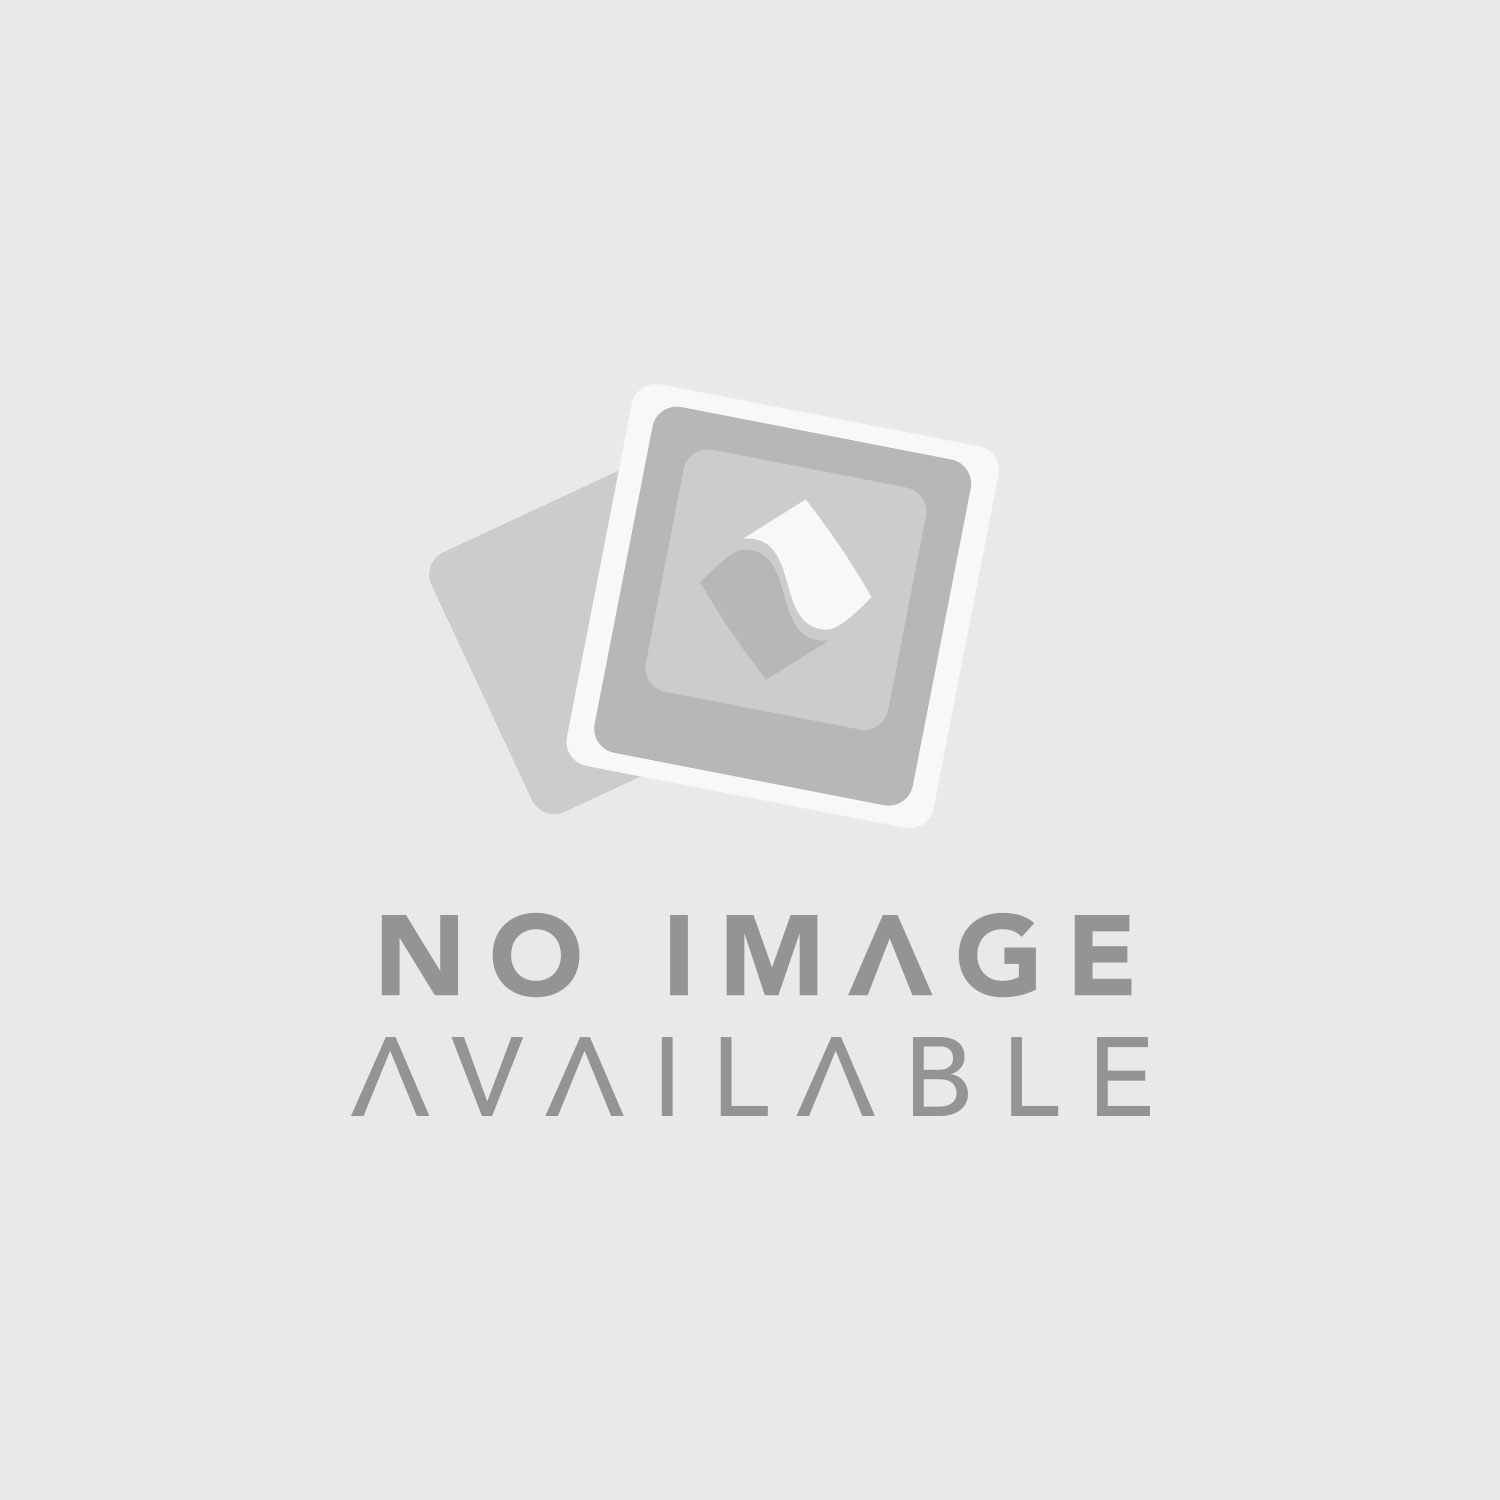 Chauvet Swarm 5 FX 3-in-1 LED Effect Light